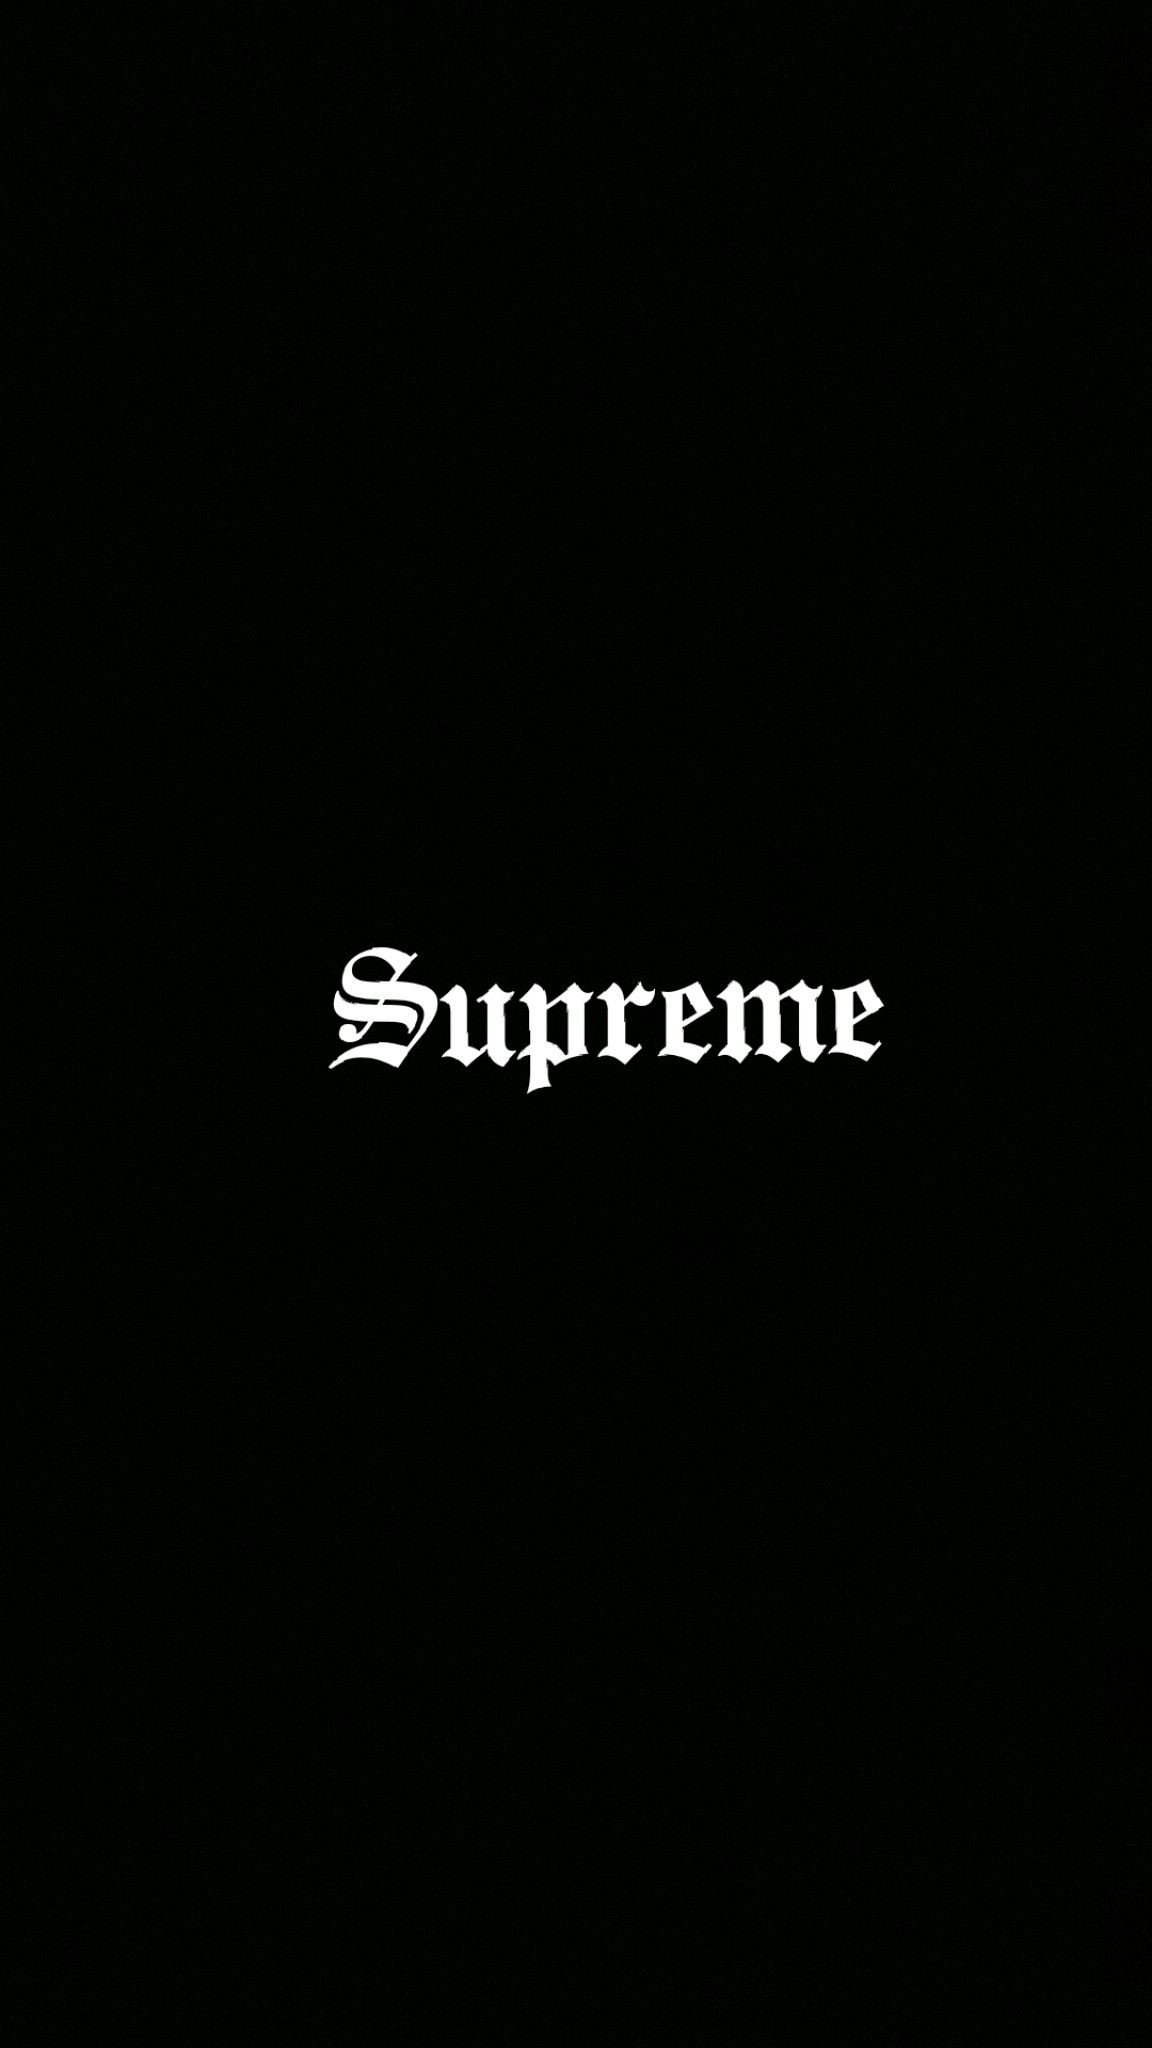 Hypebeast Wallpapers Nixxboi Supreme Wallpaper Hypebeast Wallpaper Hype Wallpaper